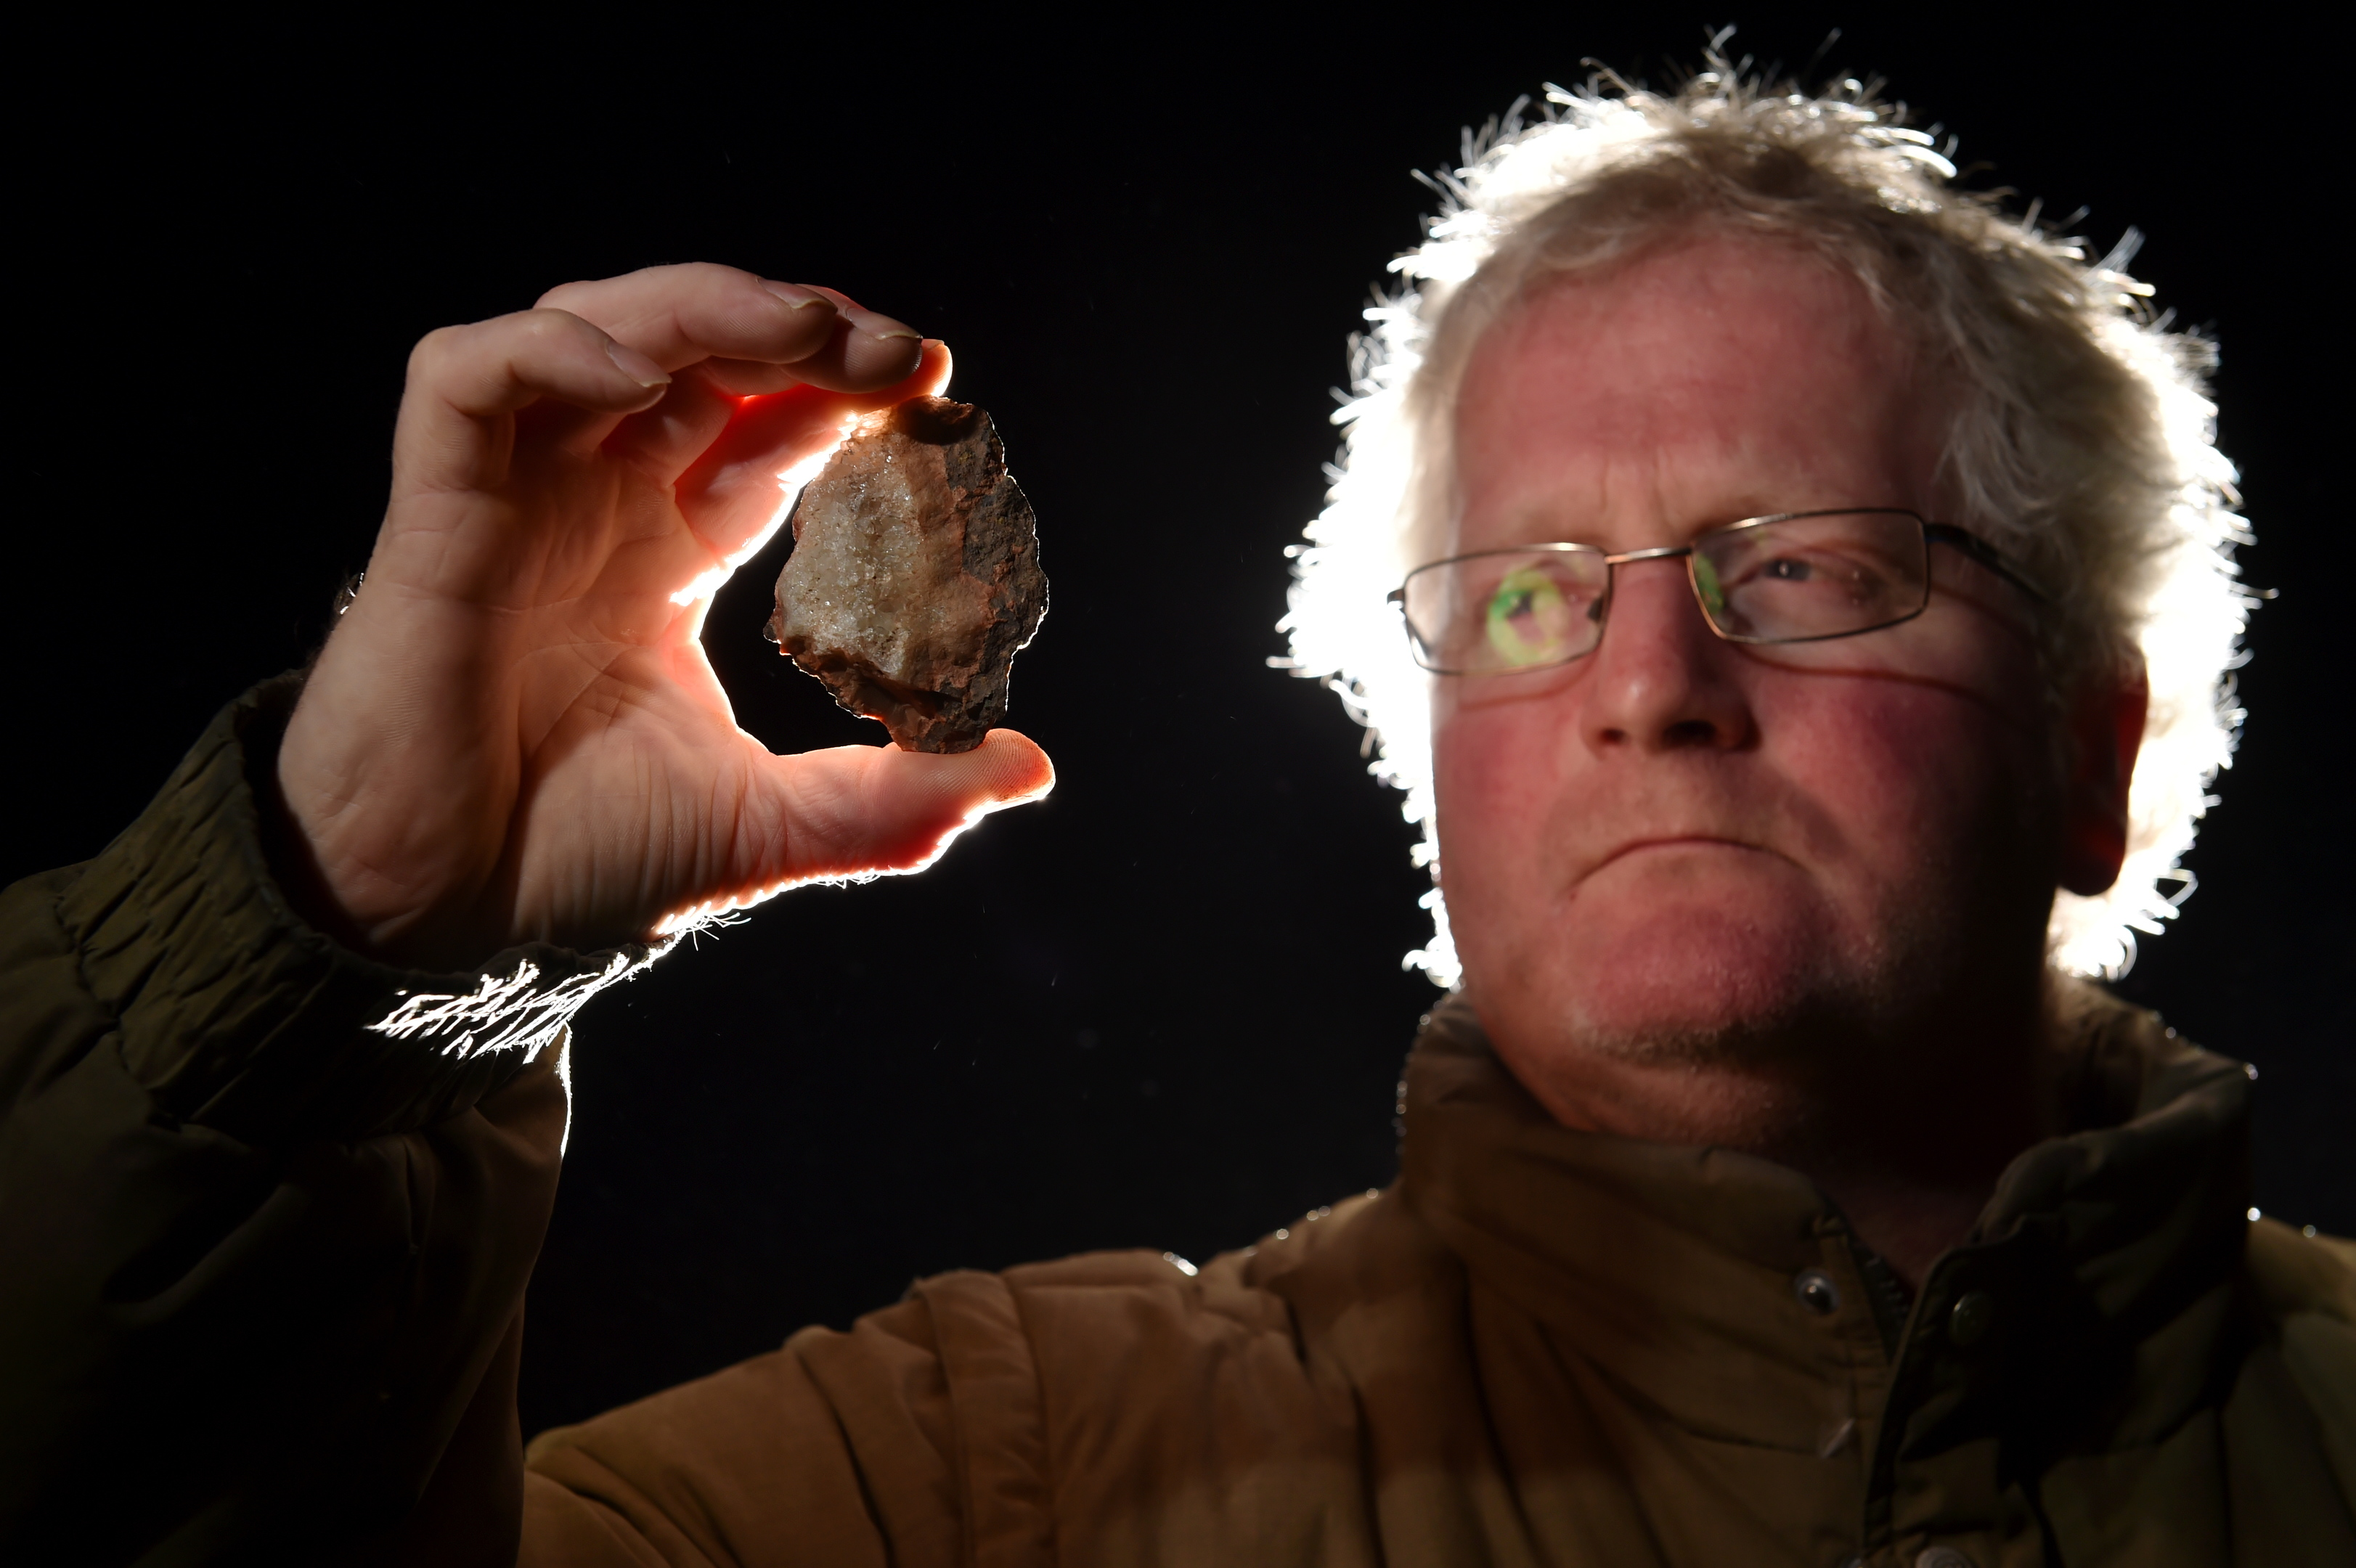 Glyn Lewis was out walking near Montrose at the weekend and found what he believes is meteor fragments.